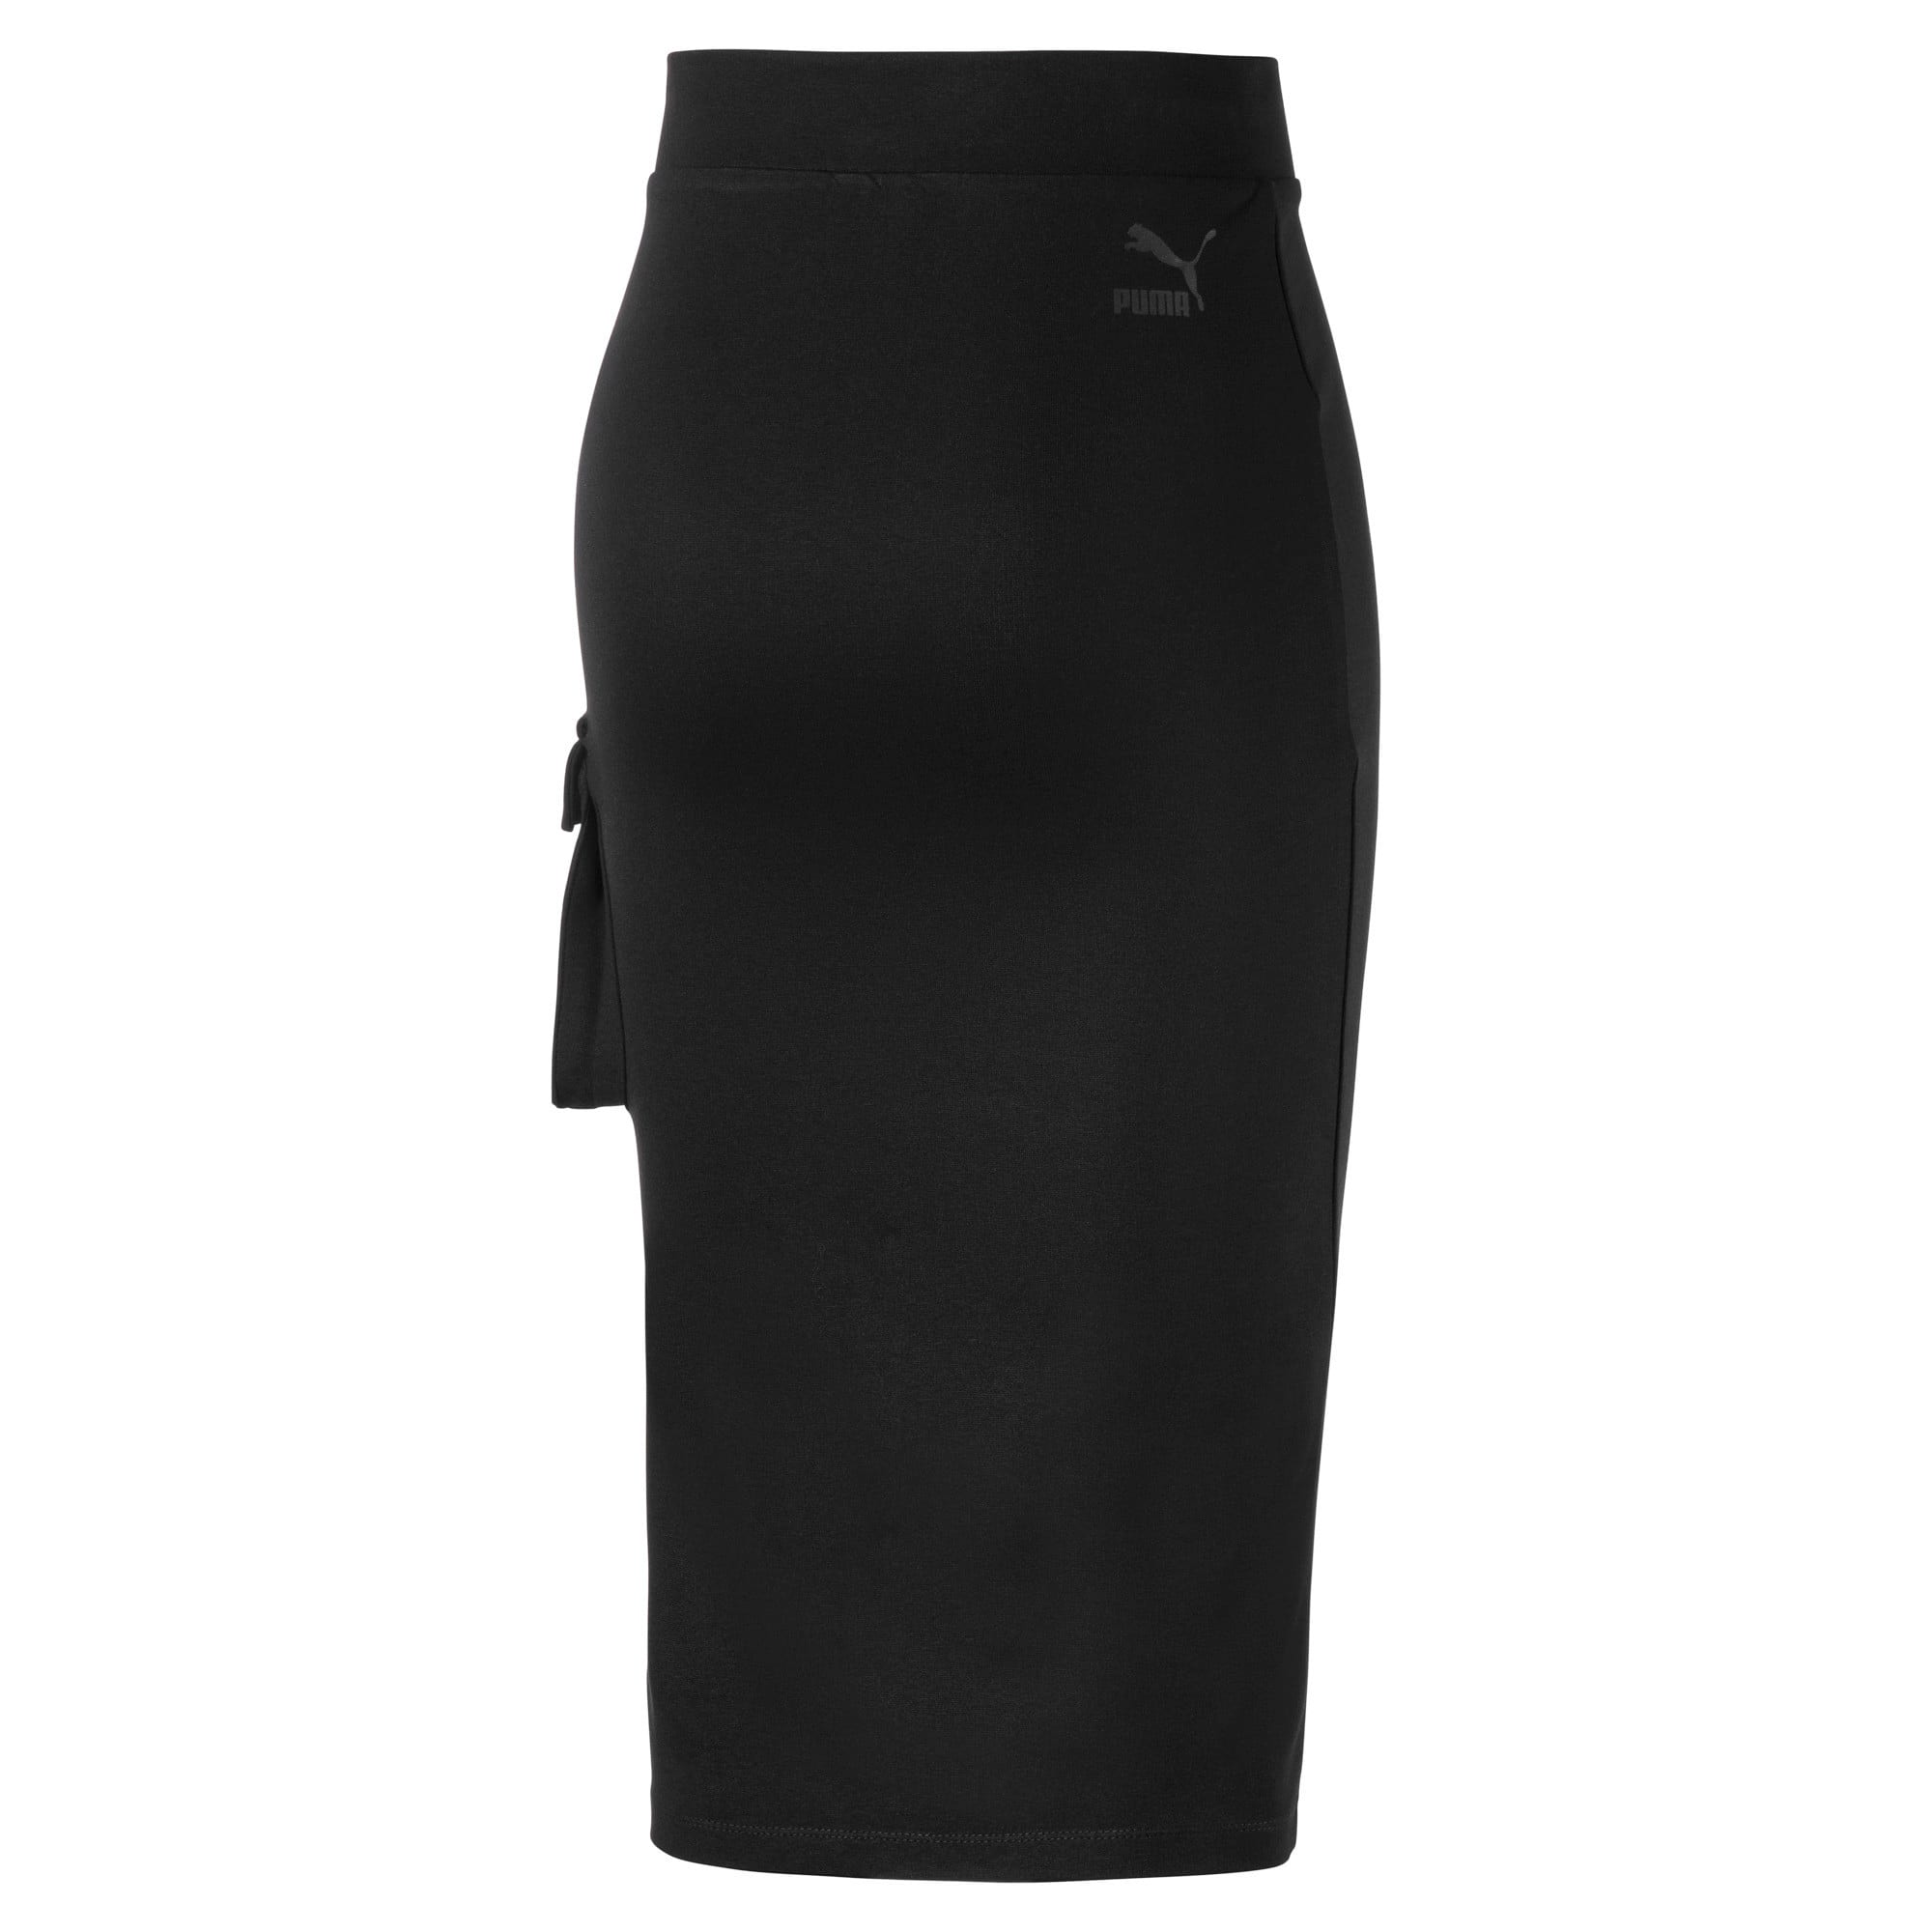 Thumbnail 4 of Damen Midi Rock, Puma Black, medium